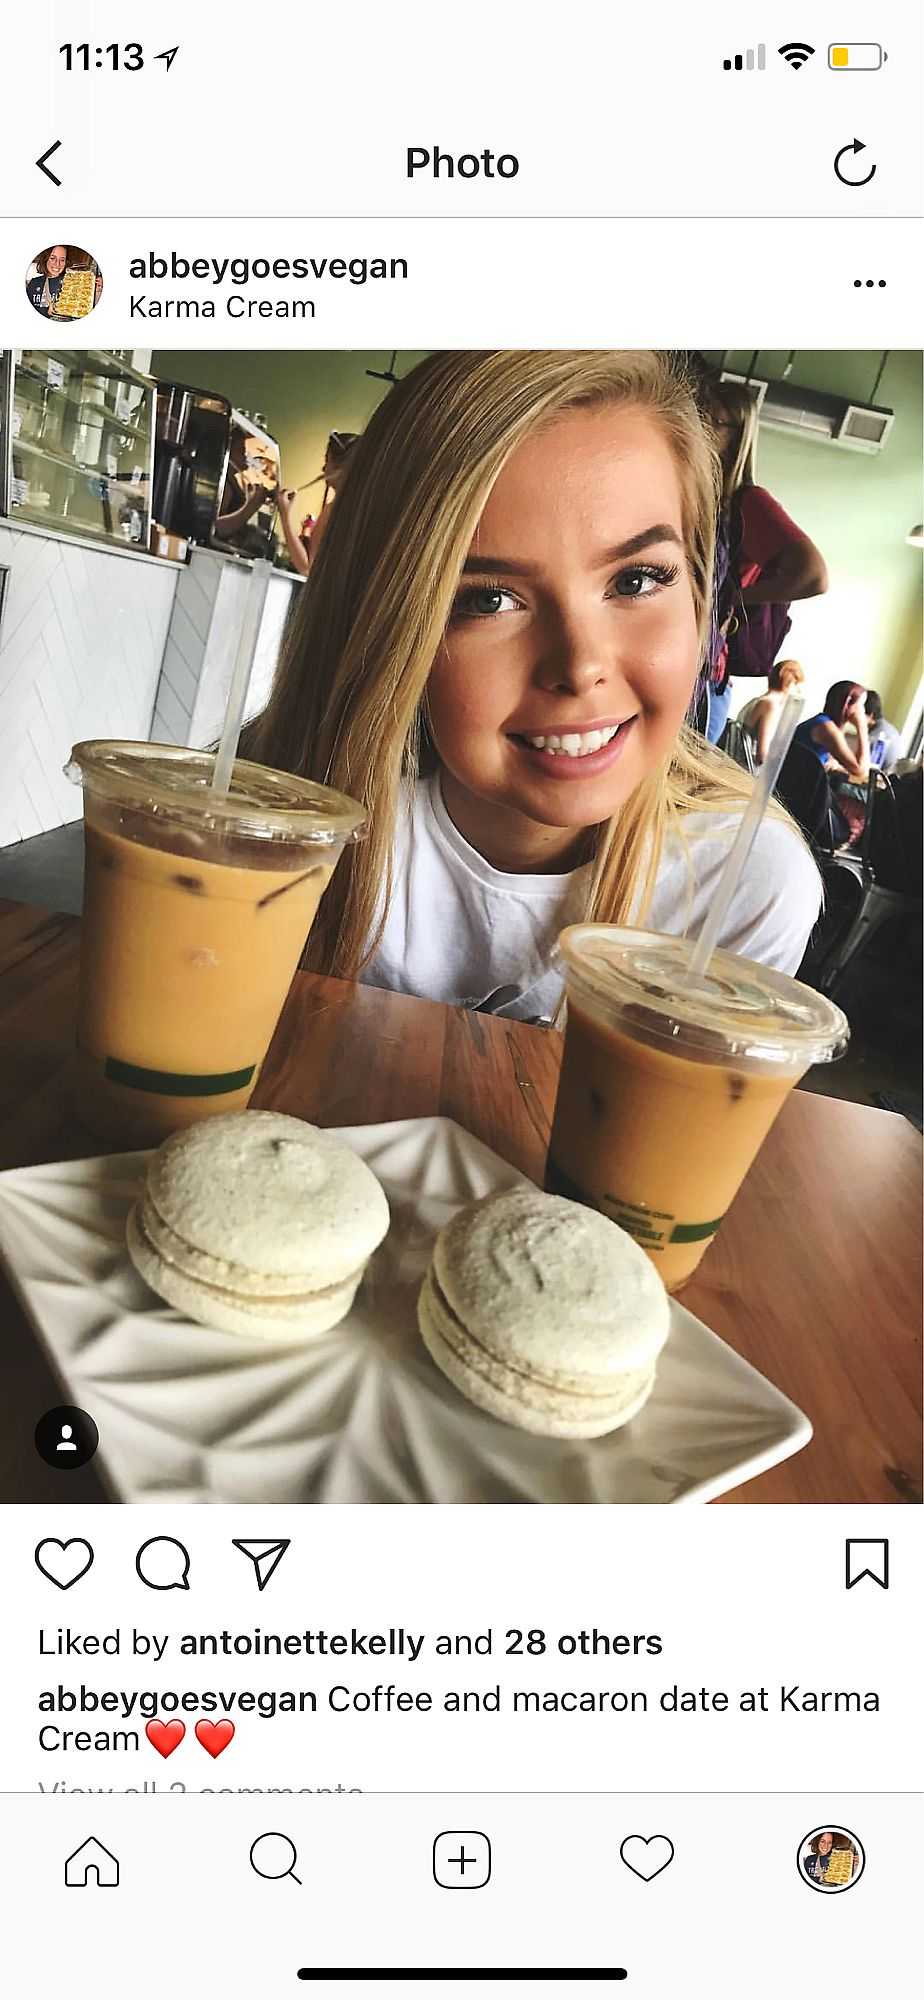 "Photo of Karma Cream  by <a href=""/members/profile/AbigailAnnaFoster"">AbigailAnnaFoster</a> <br/>Macarons!! <br/> April 15, 2018  - <a href='/contact/abuse/image/25429/386005'>Report</a>"